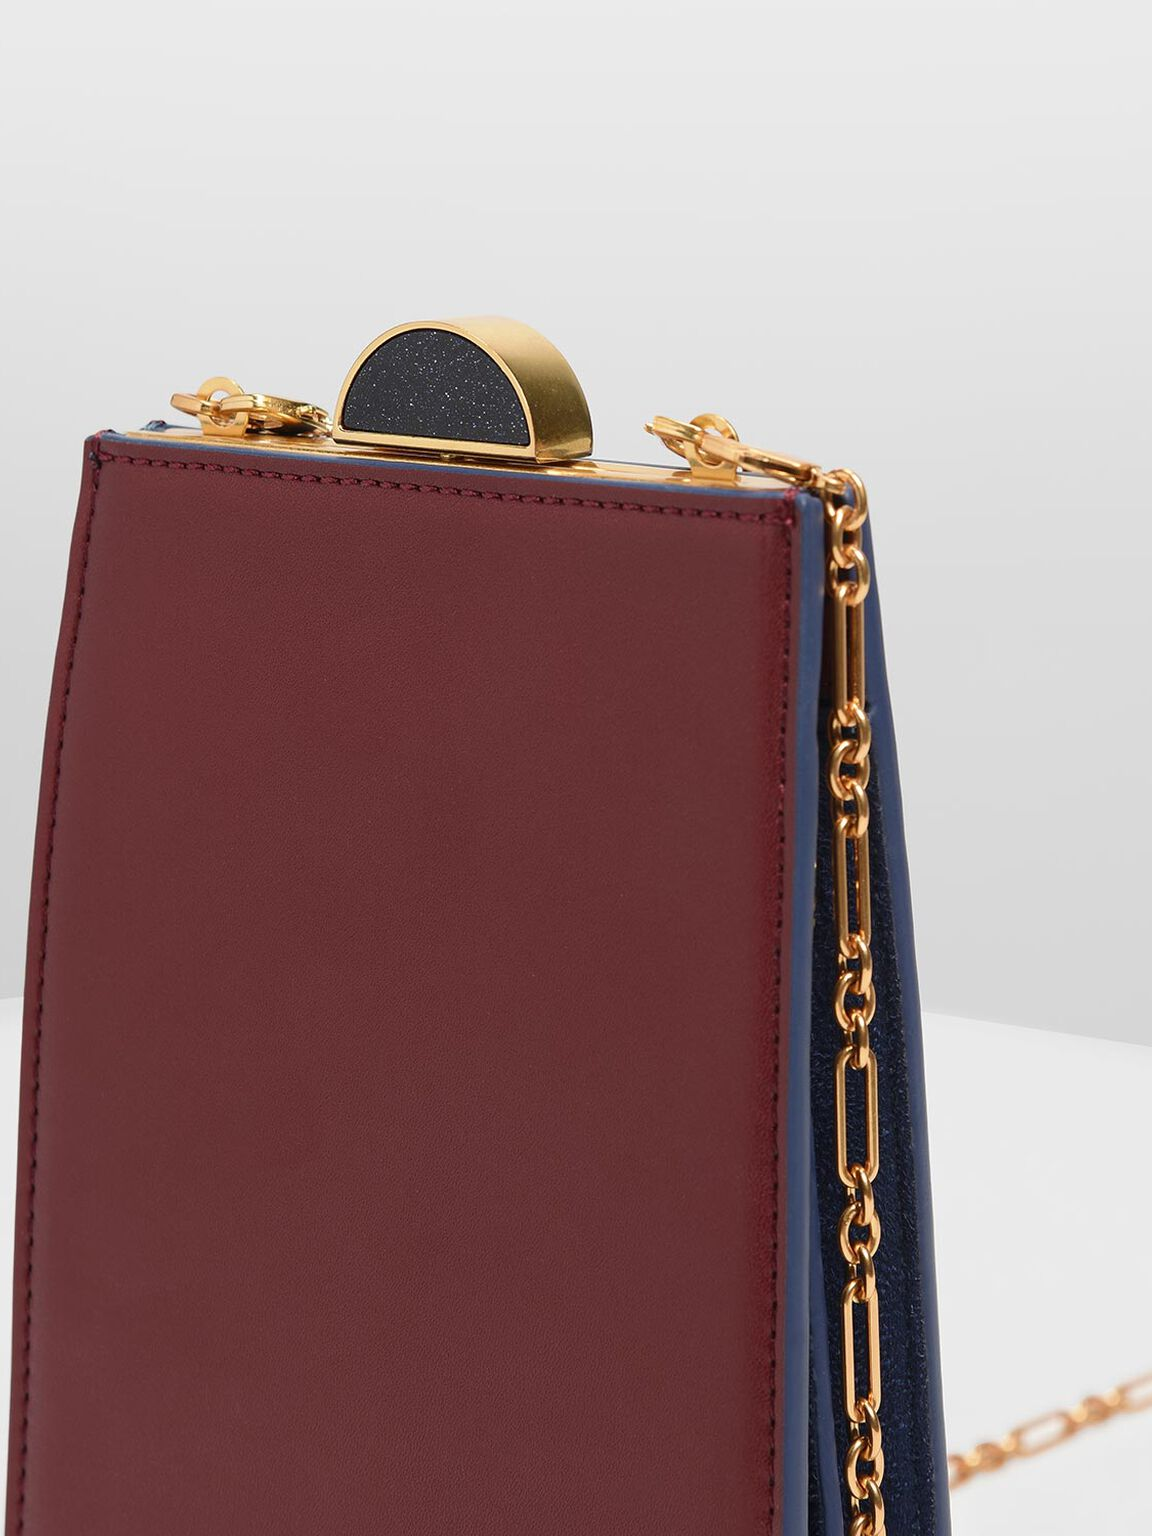 Circle Top Handle Clutch, Prune, hi-res